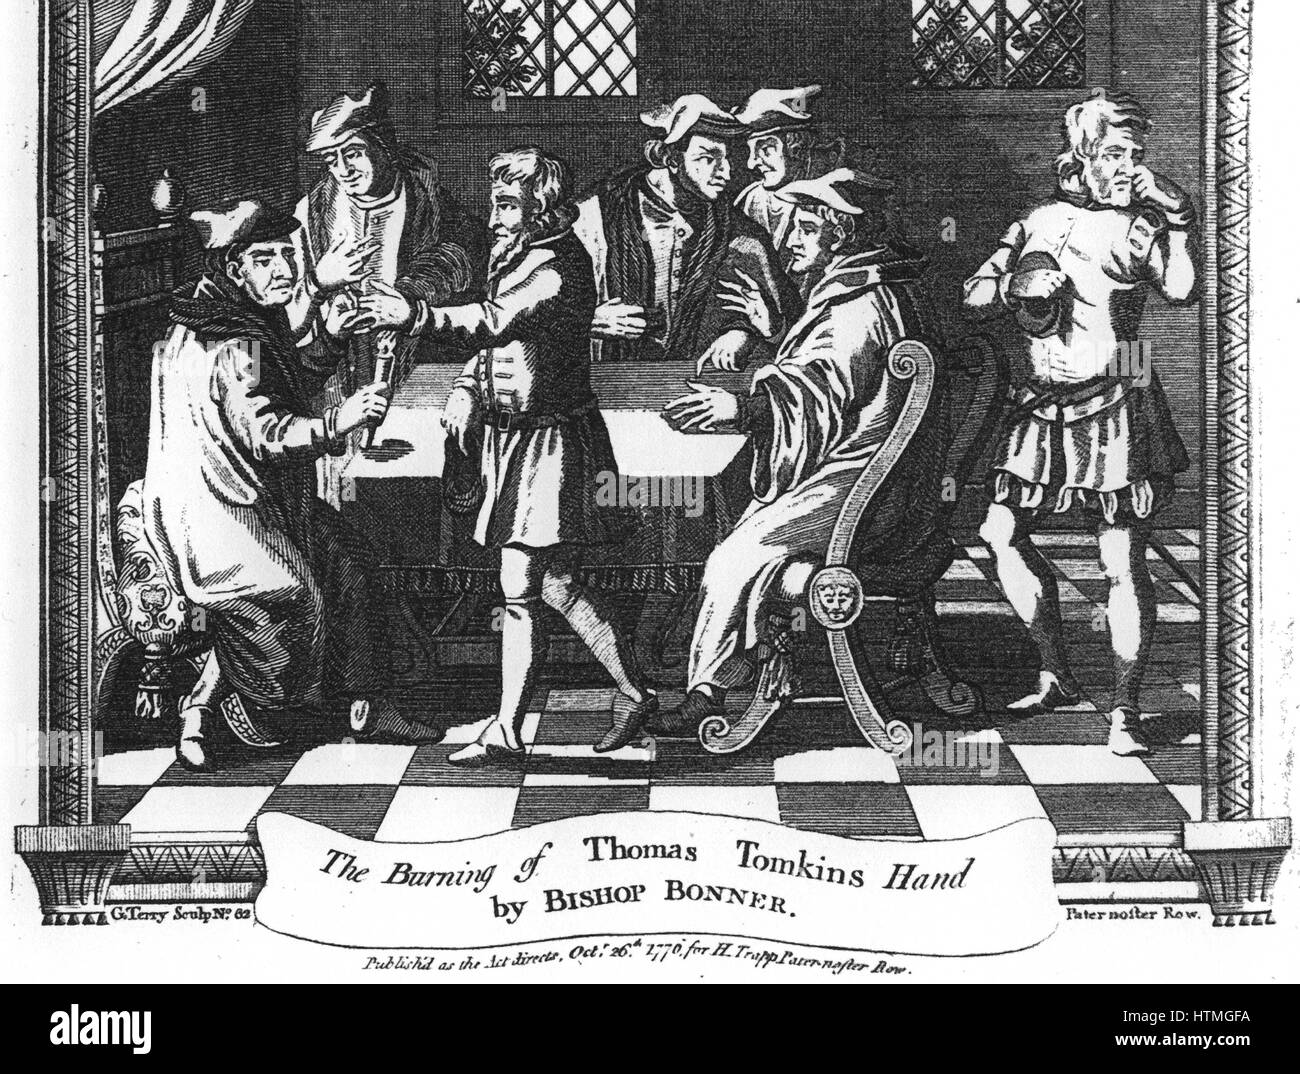 'The Burning of Thomas Tomkins Hand by Bishop Bonner'. Engraving from a 1776 edition of John Foxe 'The - Stock Image